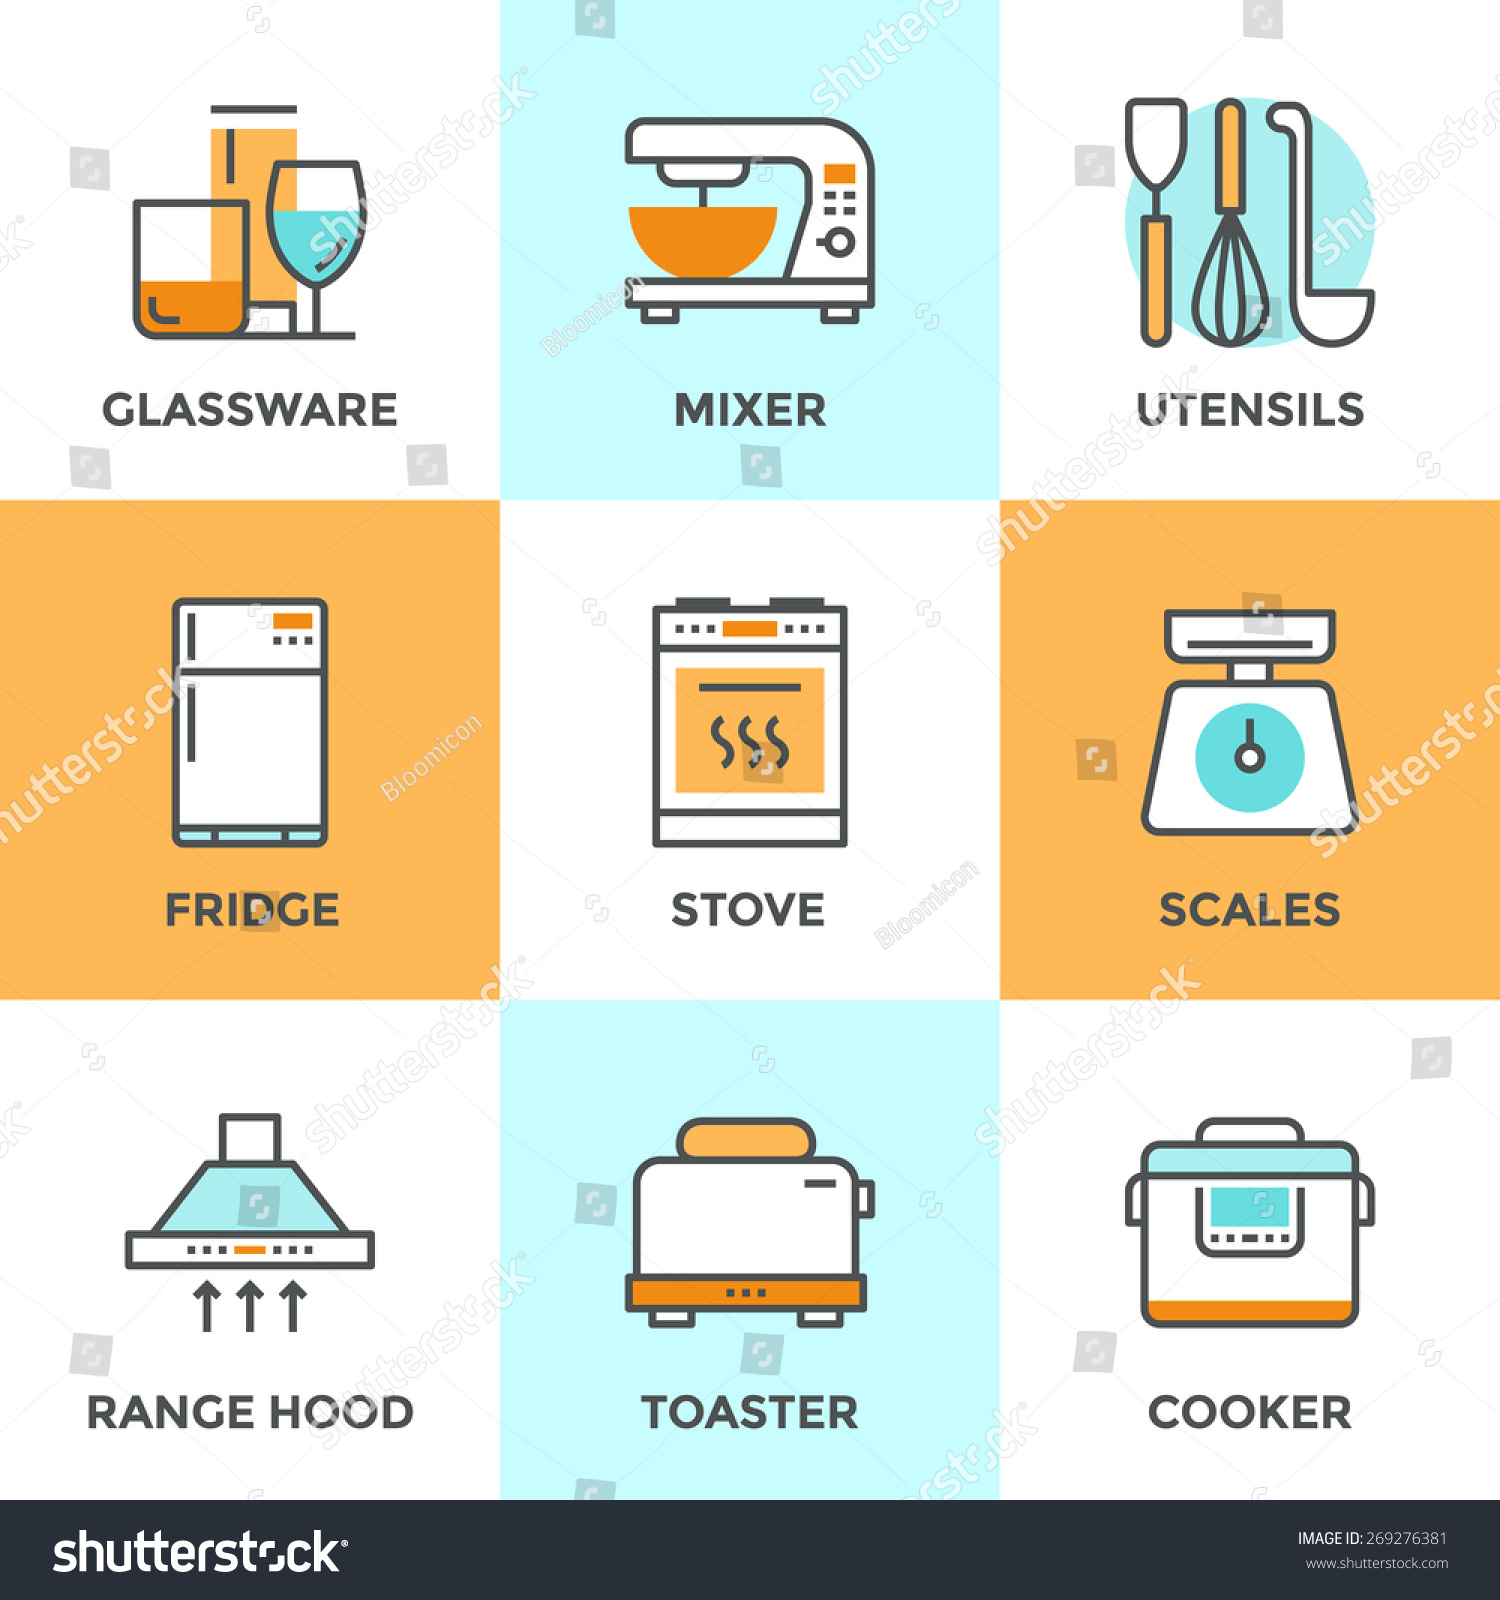 Line Icons Set With Flat Design Elements Of Kitchen Utensils Glassware And Home Appliance